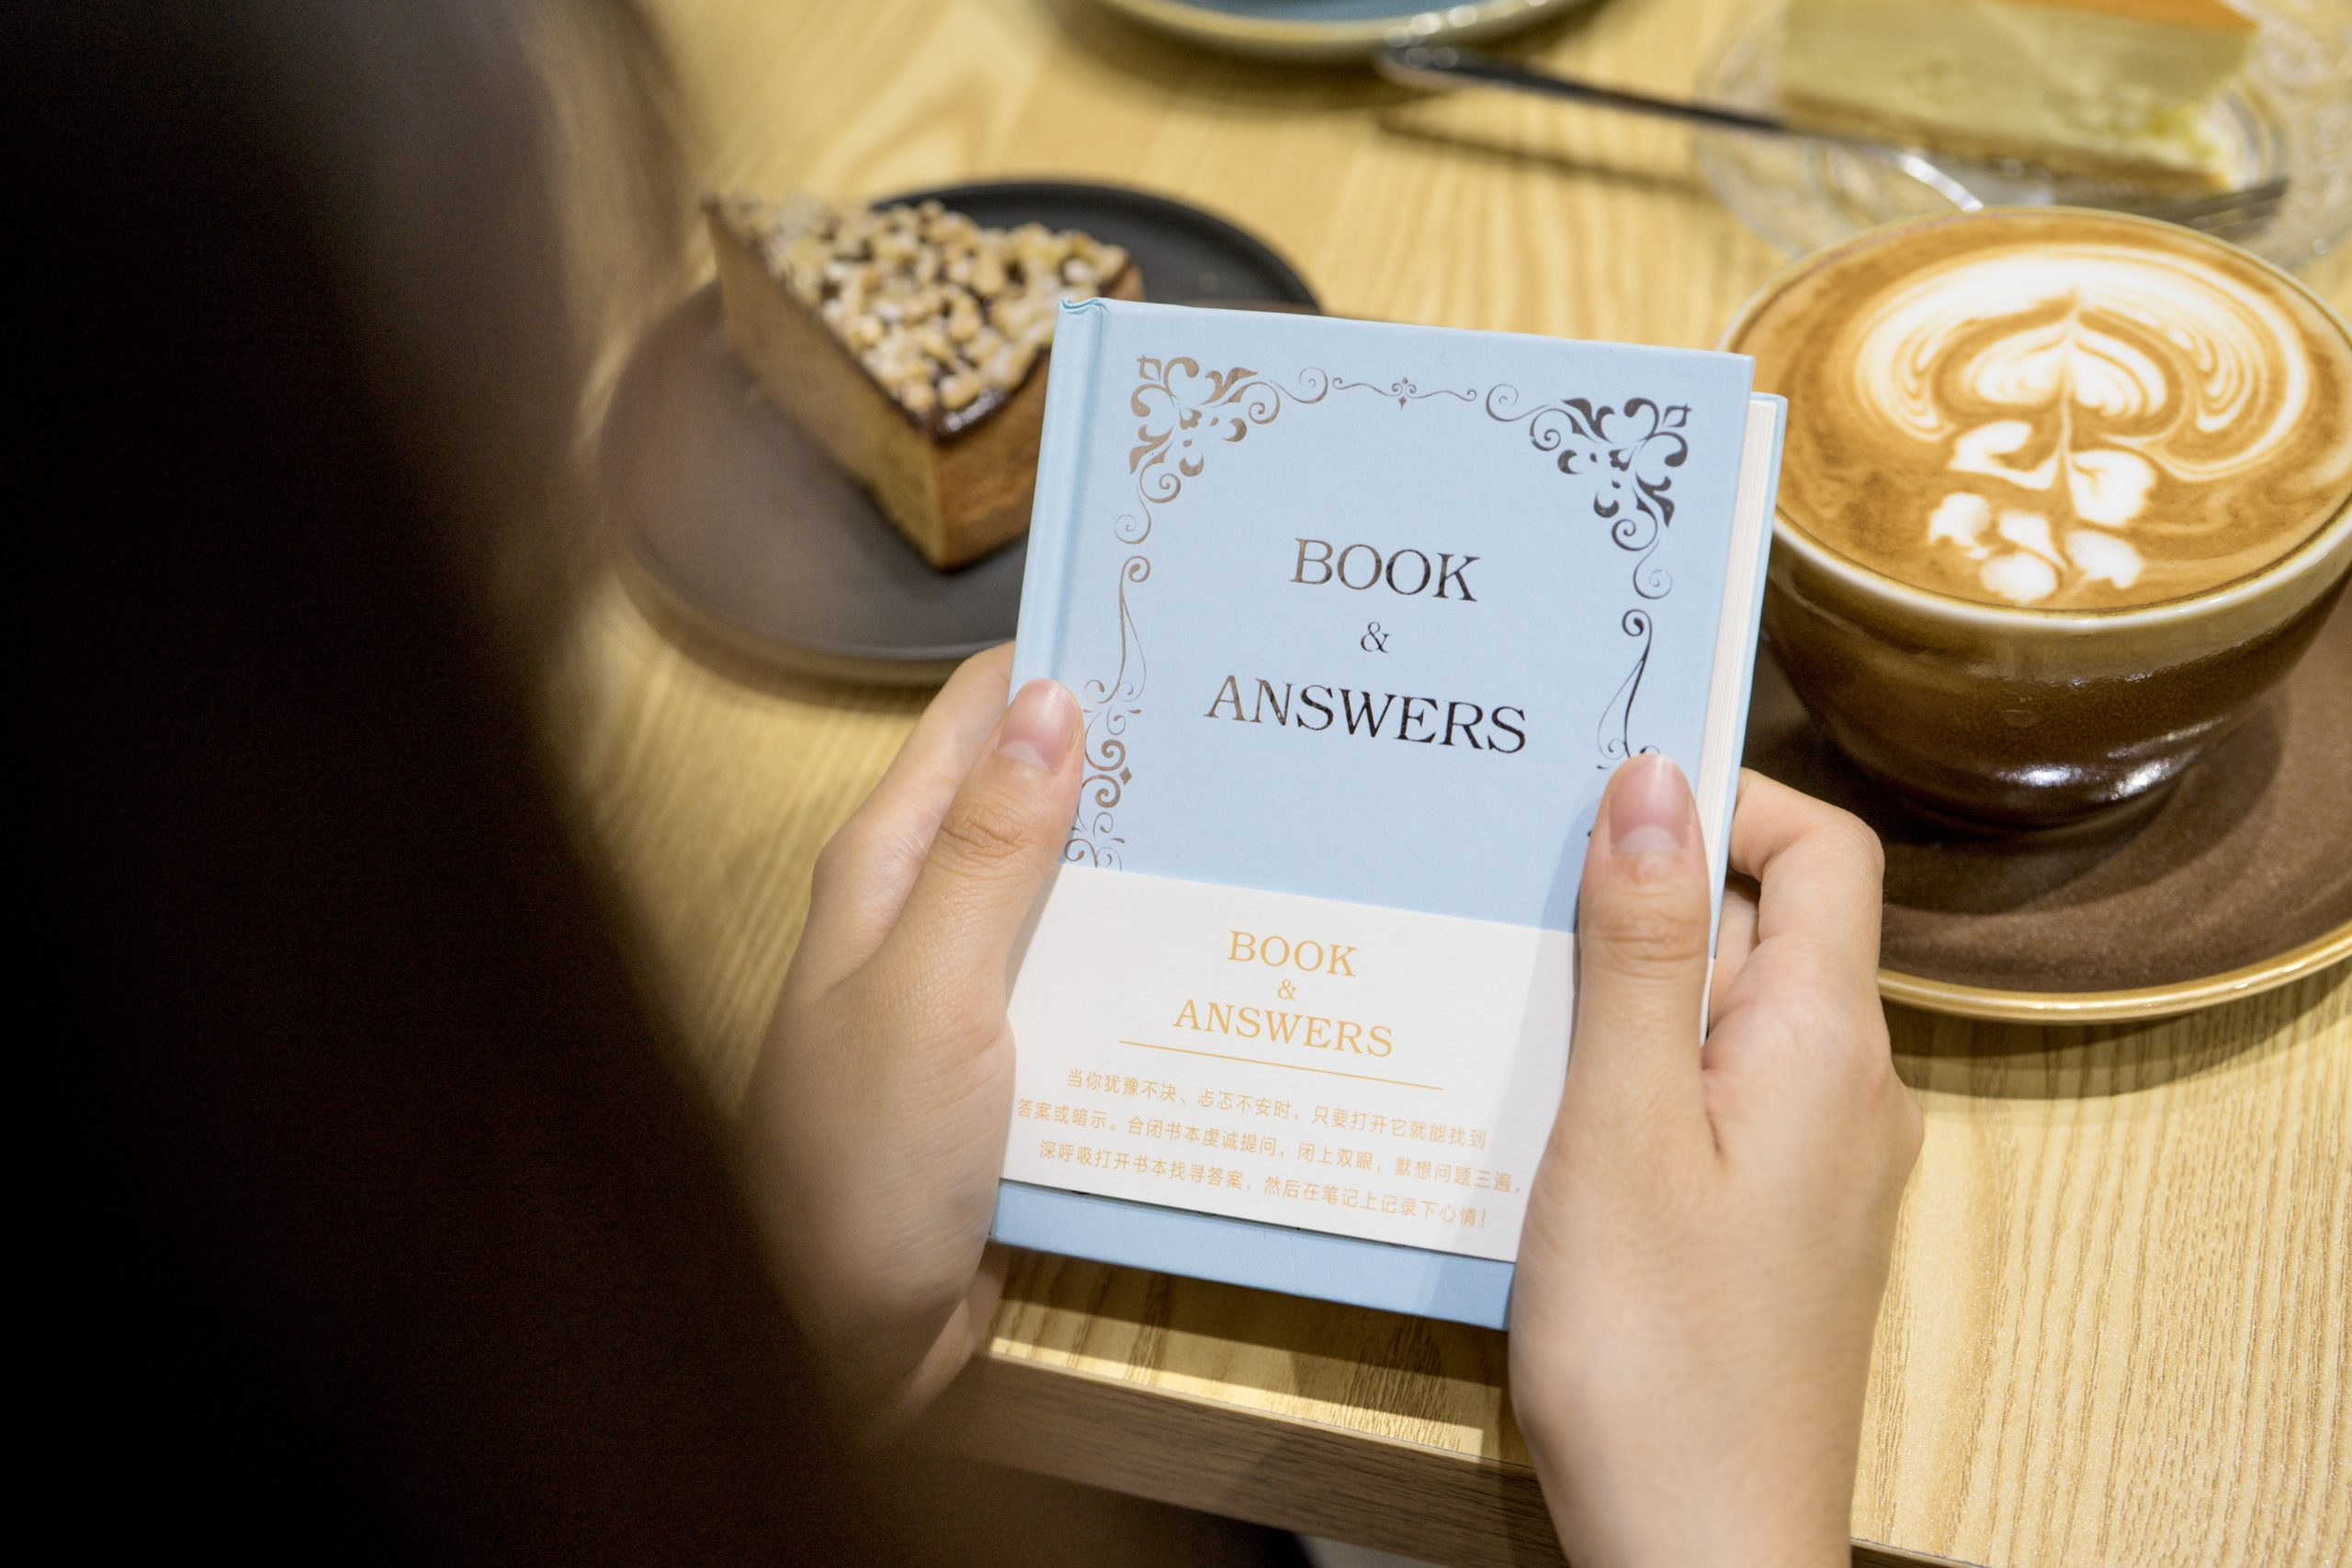 book&answers-6